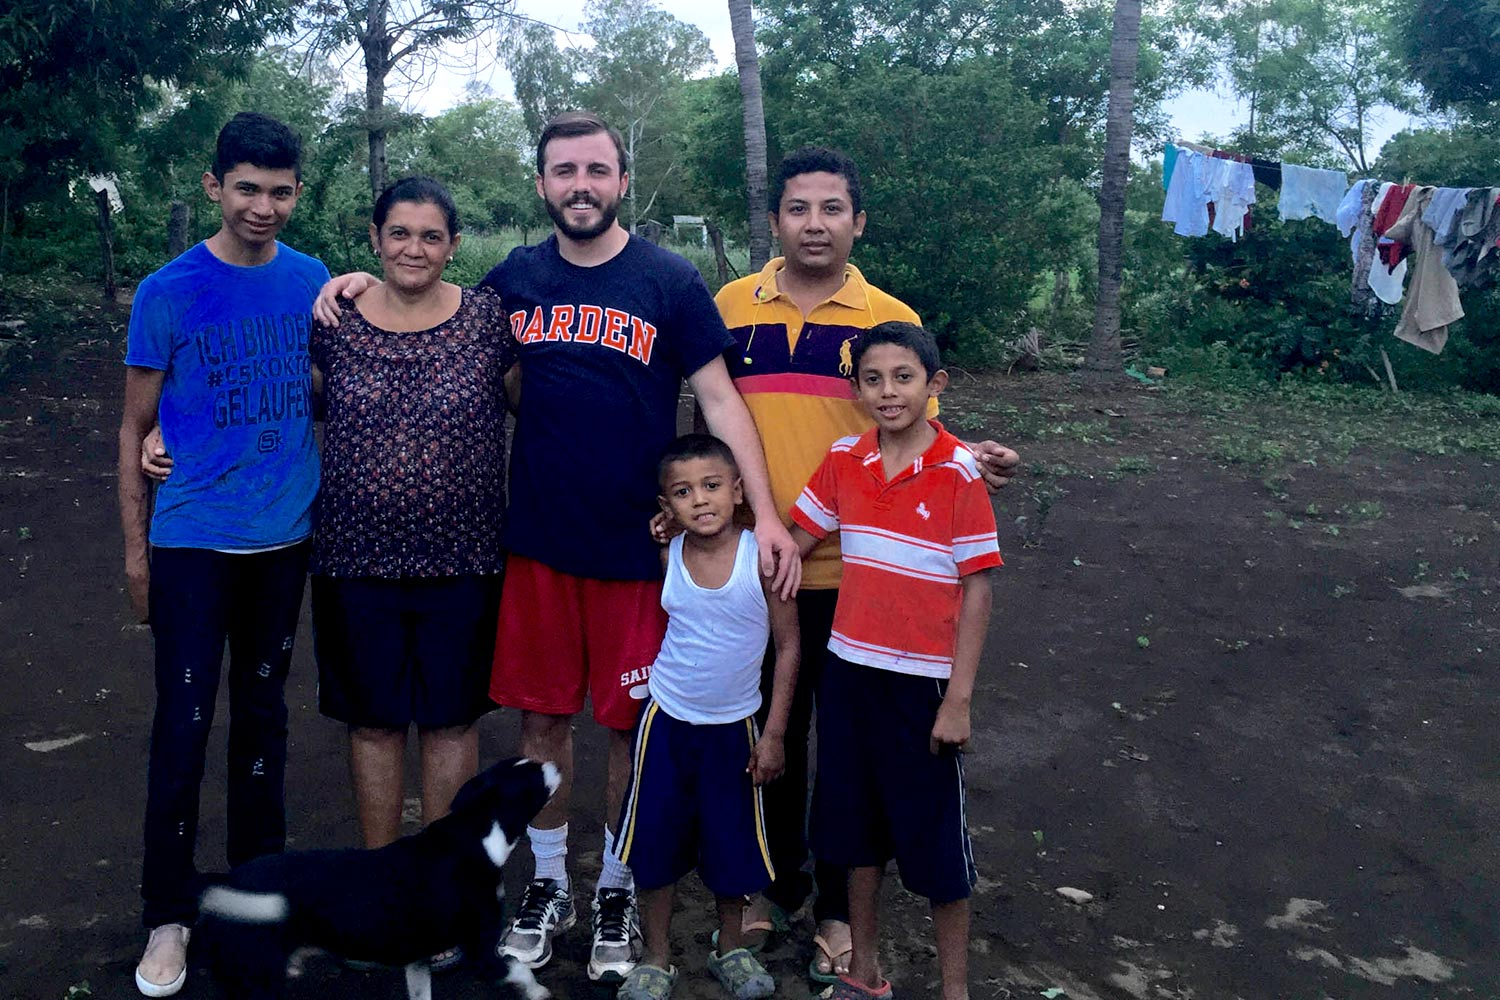 Nick Molloy, a 2013 alumnus, used the time between leaving his corporate finance job and beginning his graduate studies at the Darden School of Business this fall to stay with a host family in Nicaragua, where he worked on a model farm project and a micro